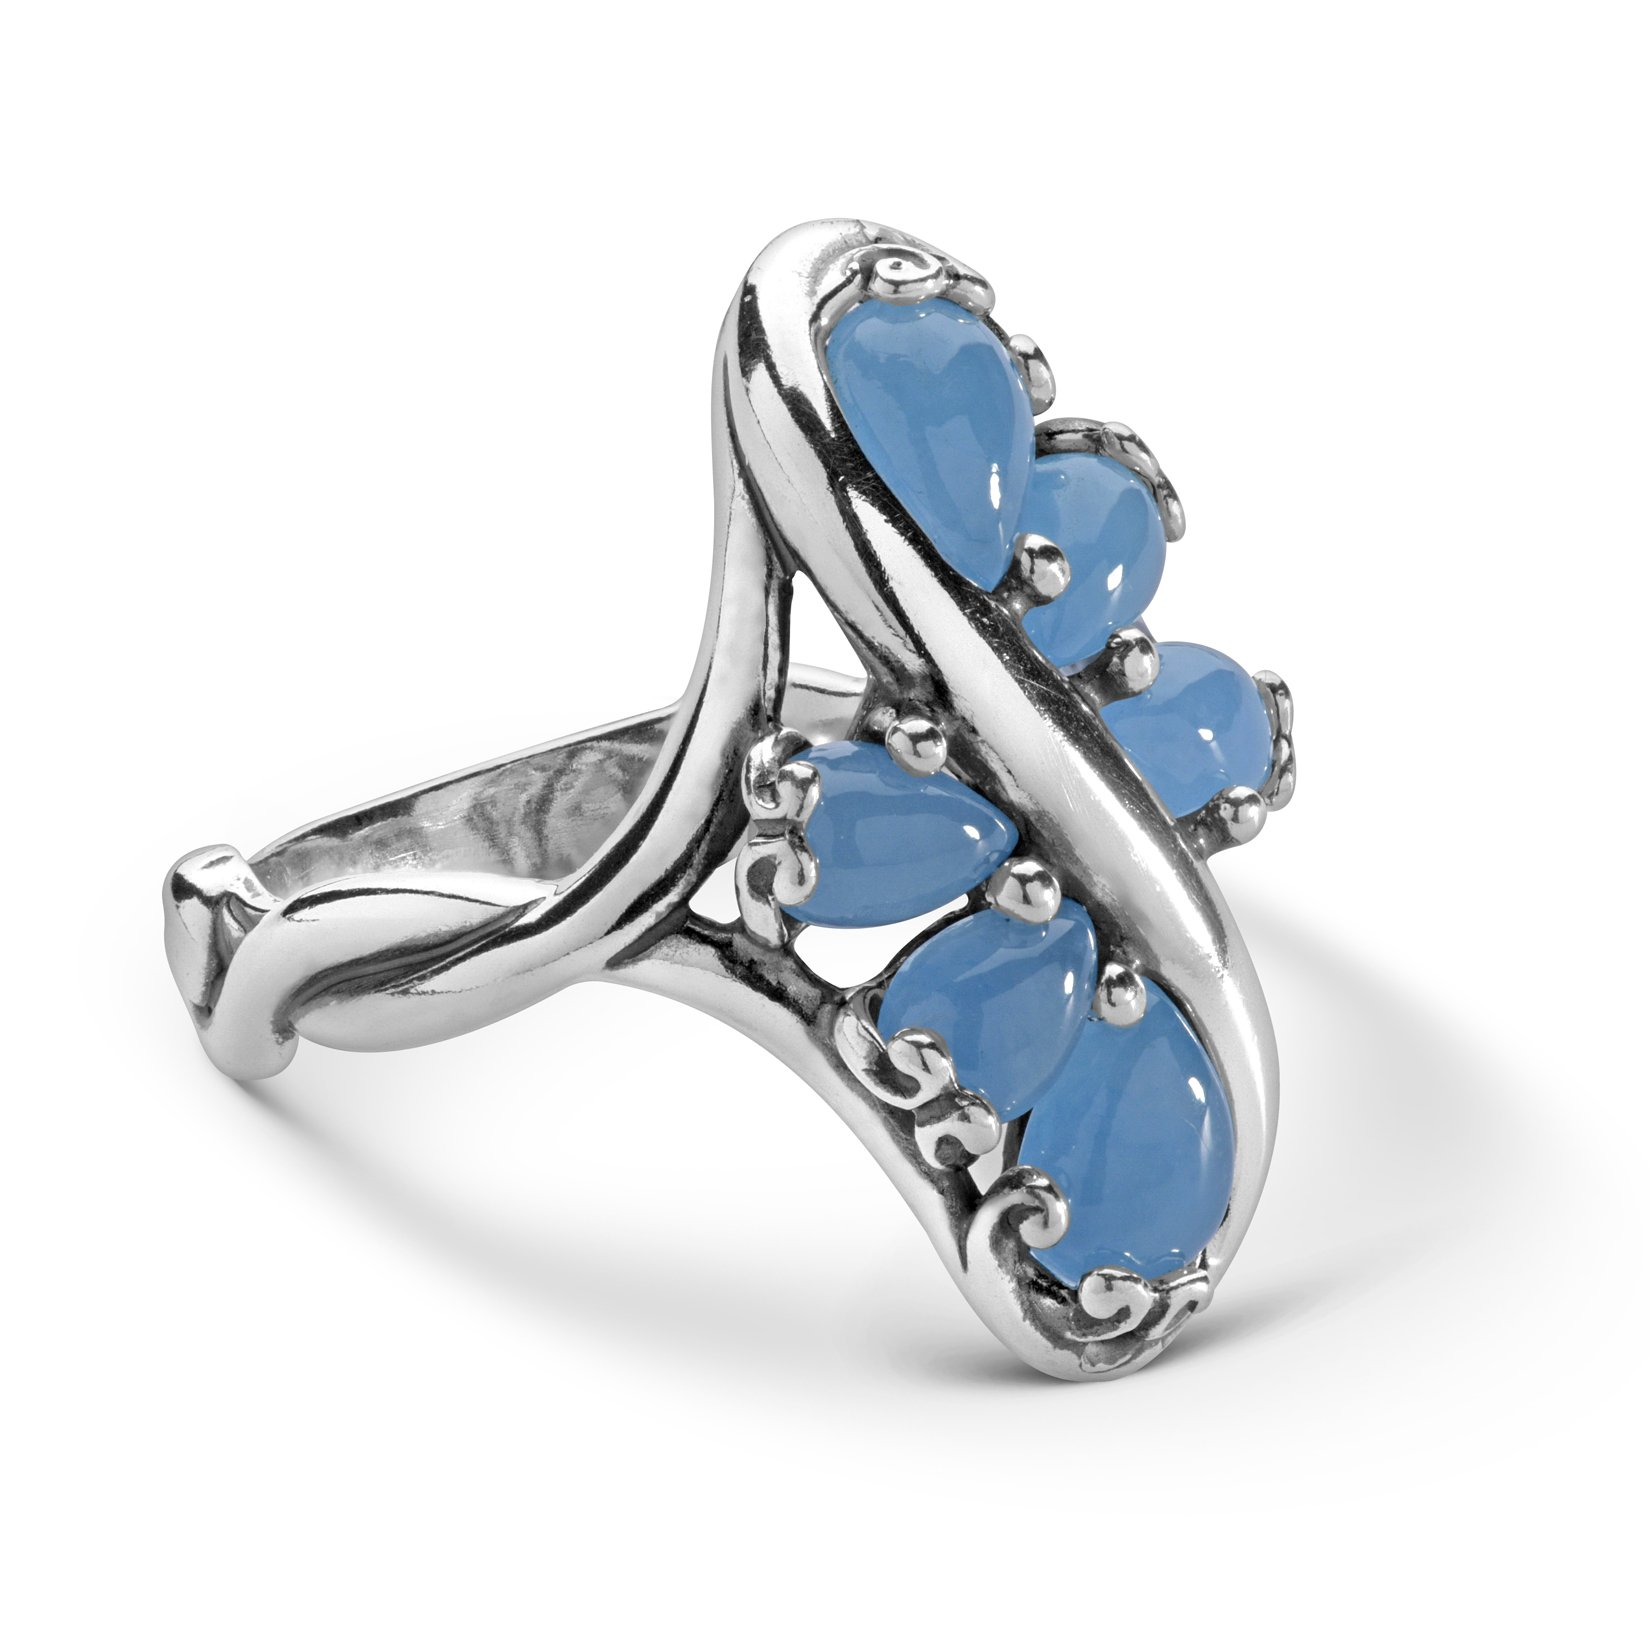 925 Silver and Blue Jade Cascading Ring - Size 9